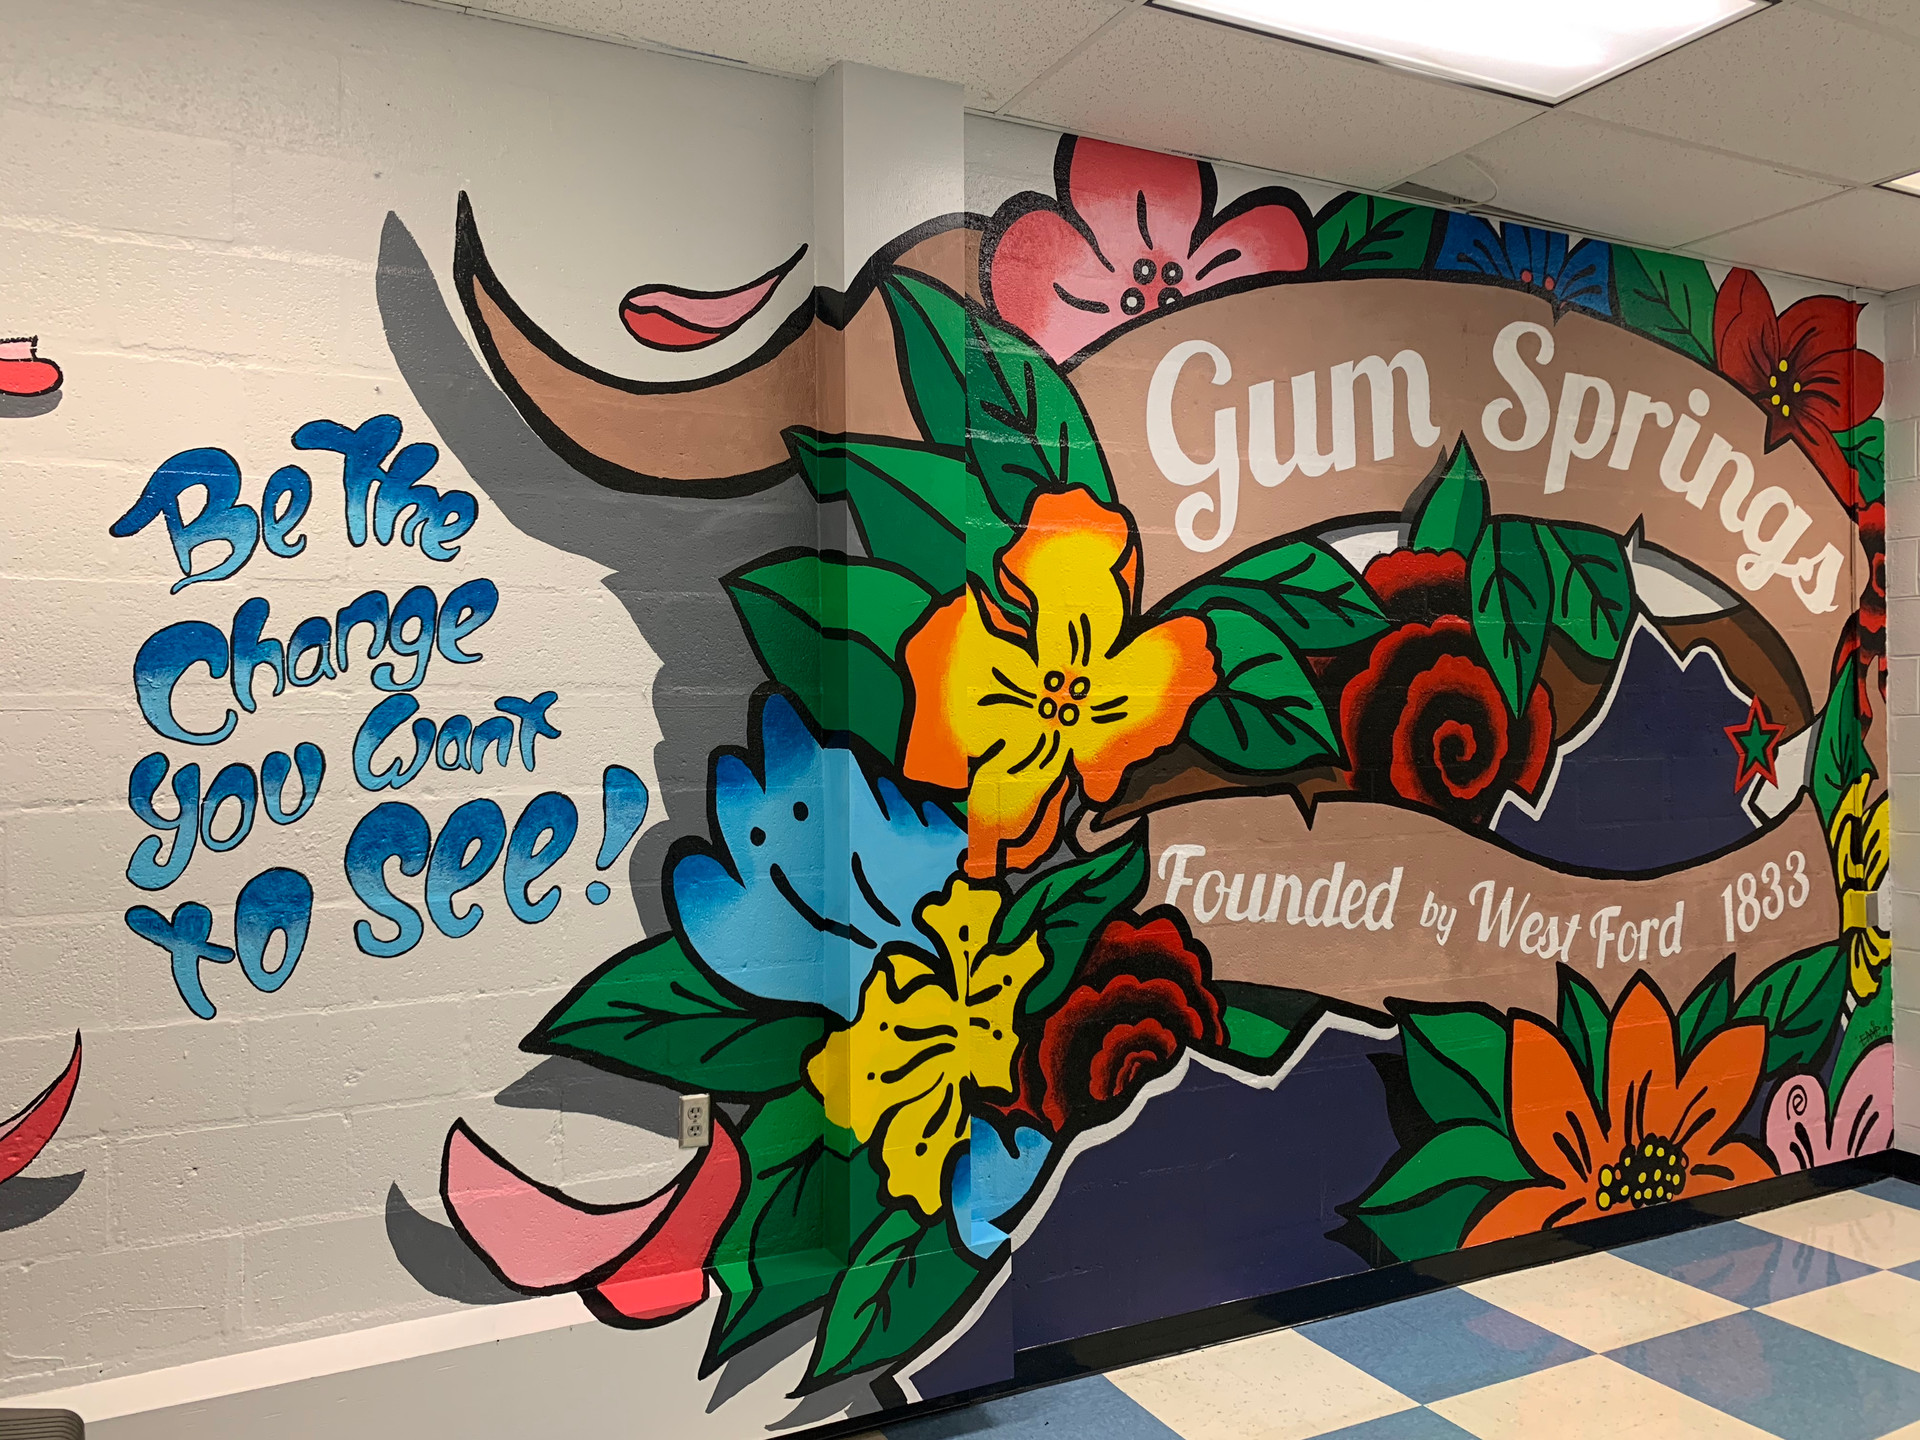 Gum Springs Founder Mural